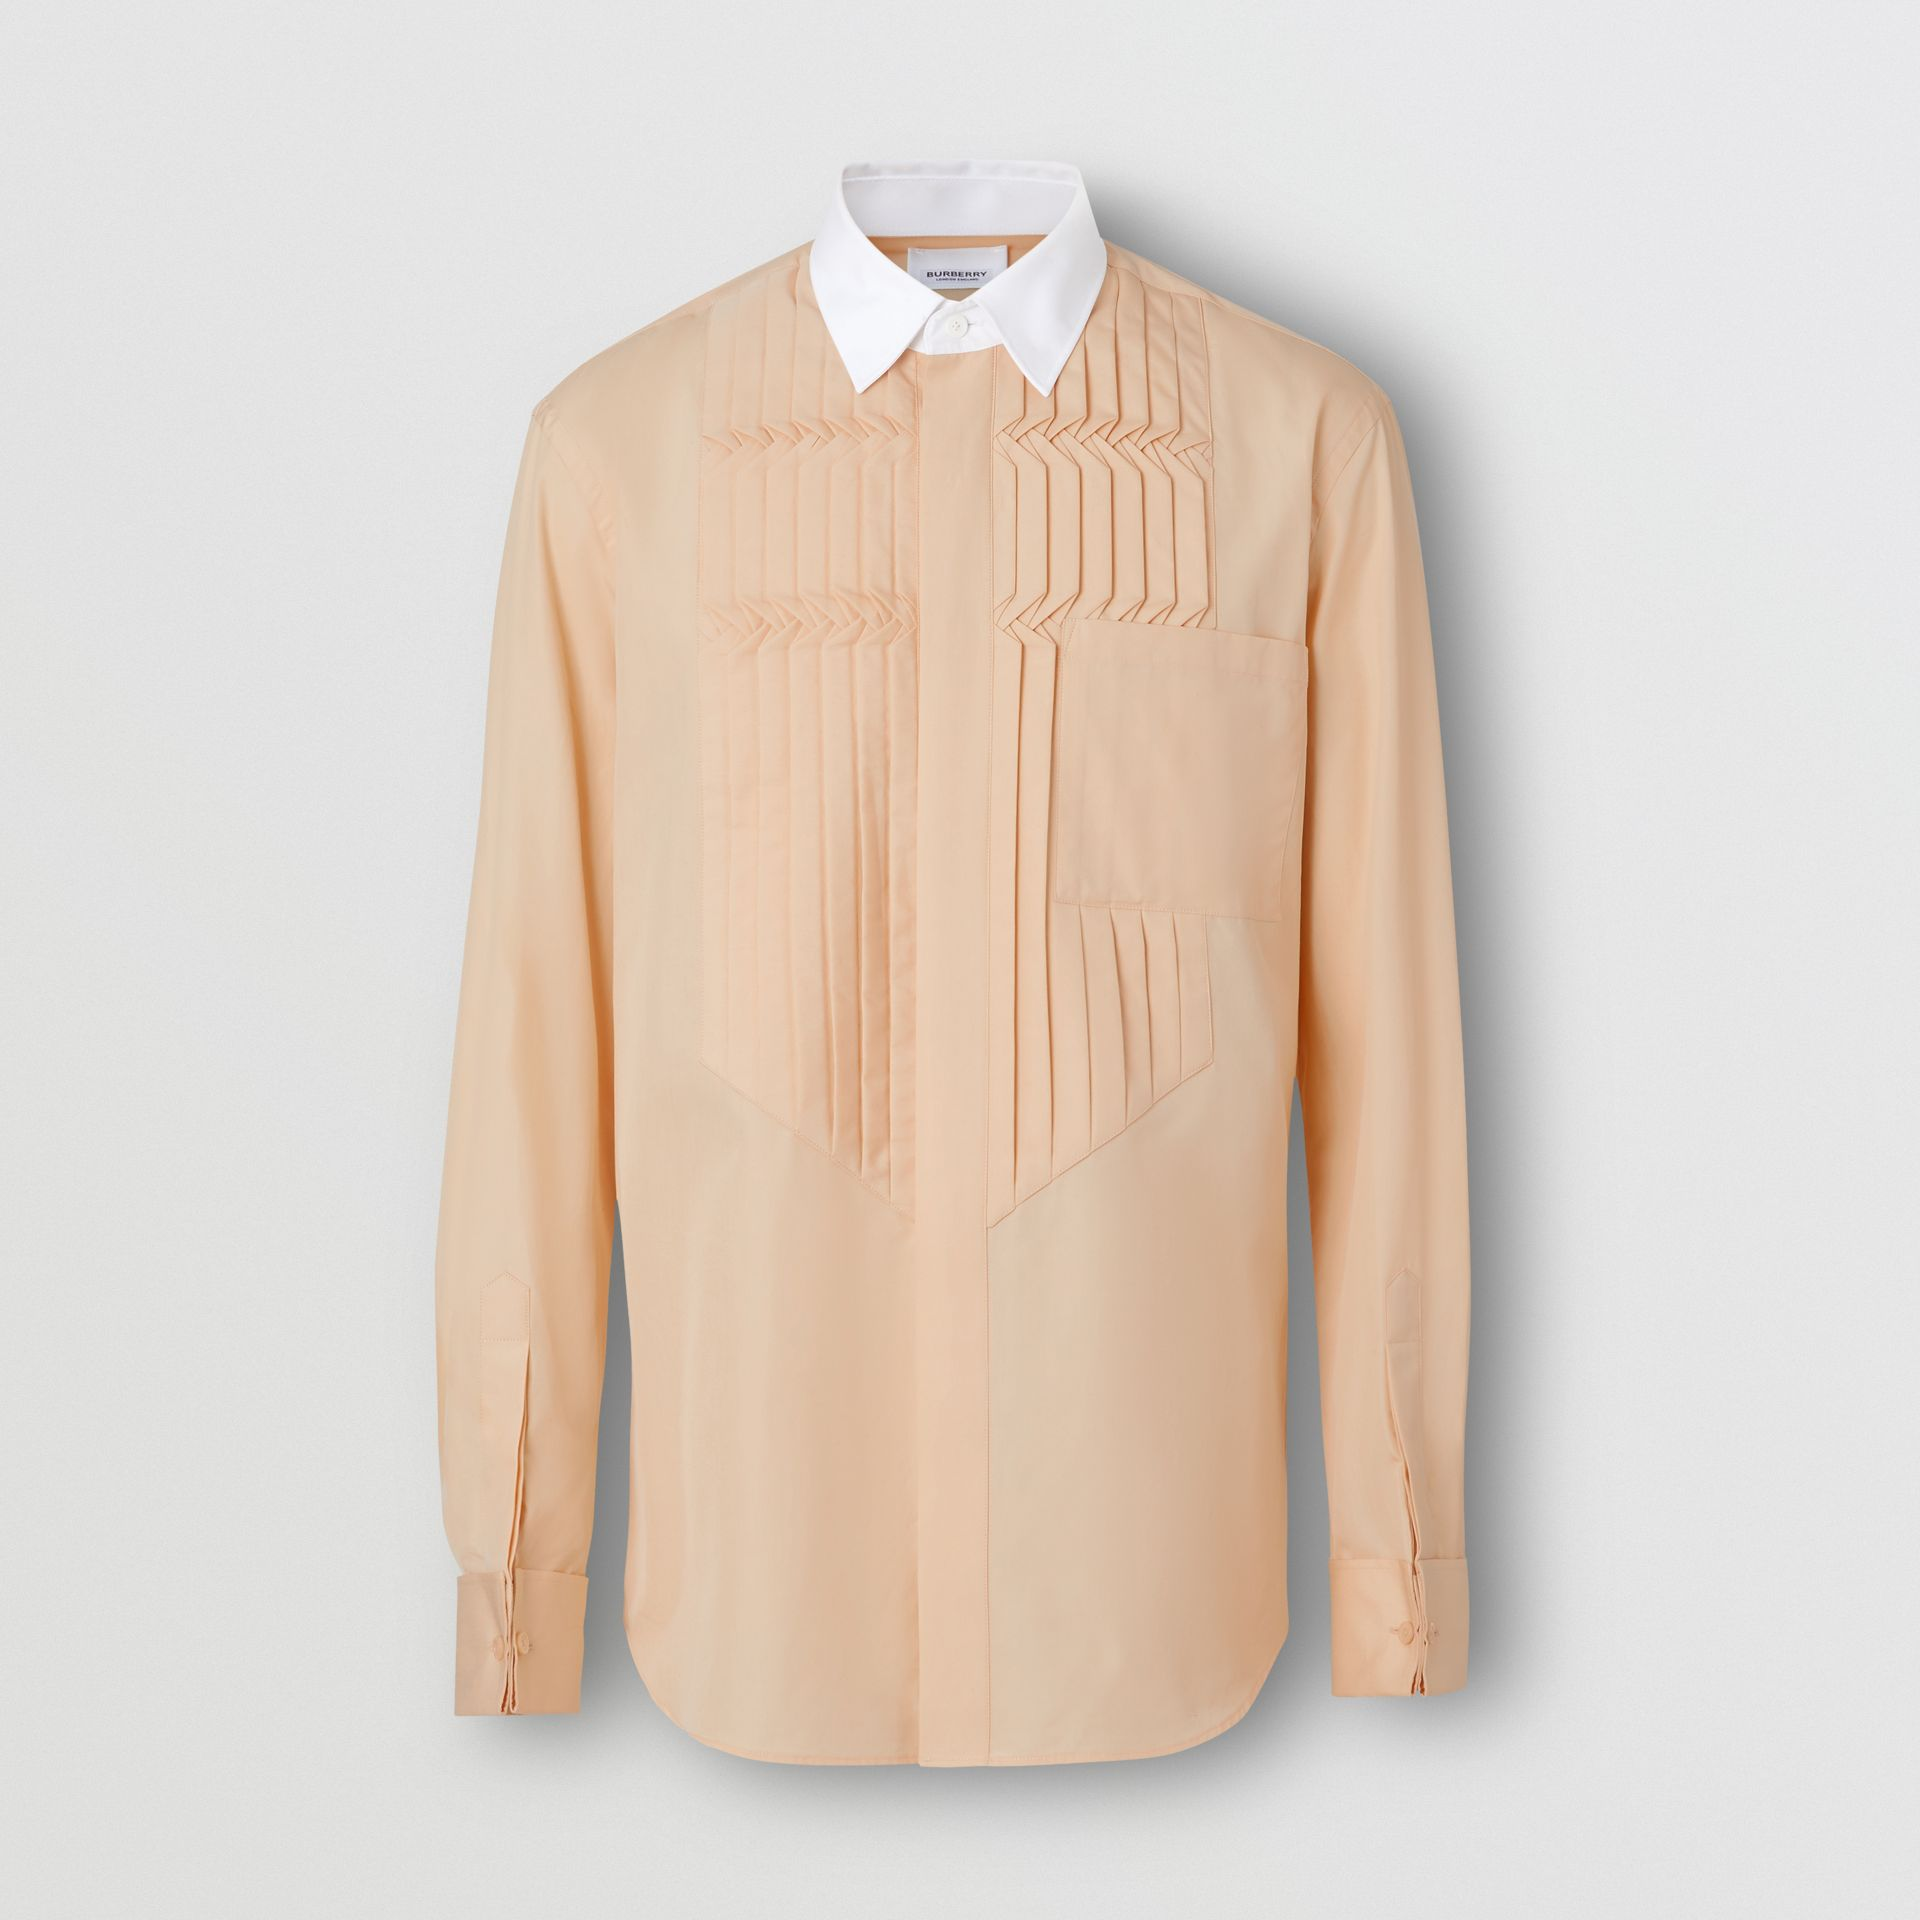 Classic Fit Pleated Bib Cotton Poplin Dress Shirt in Buttermilk - Men | Burberry Australia - gallery image 3